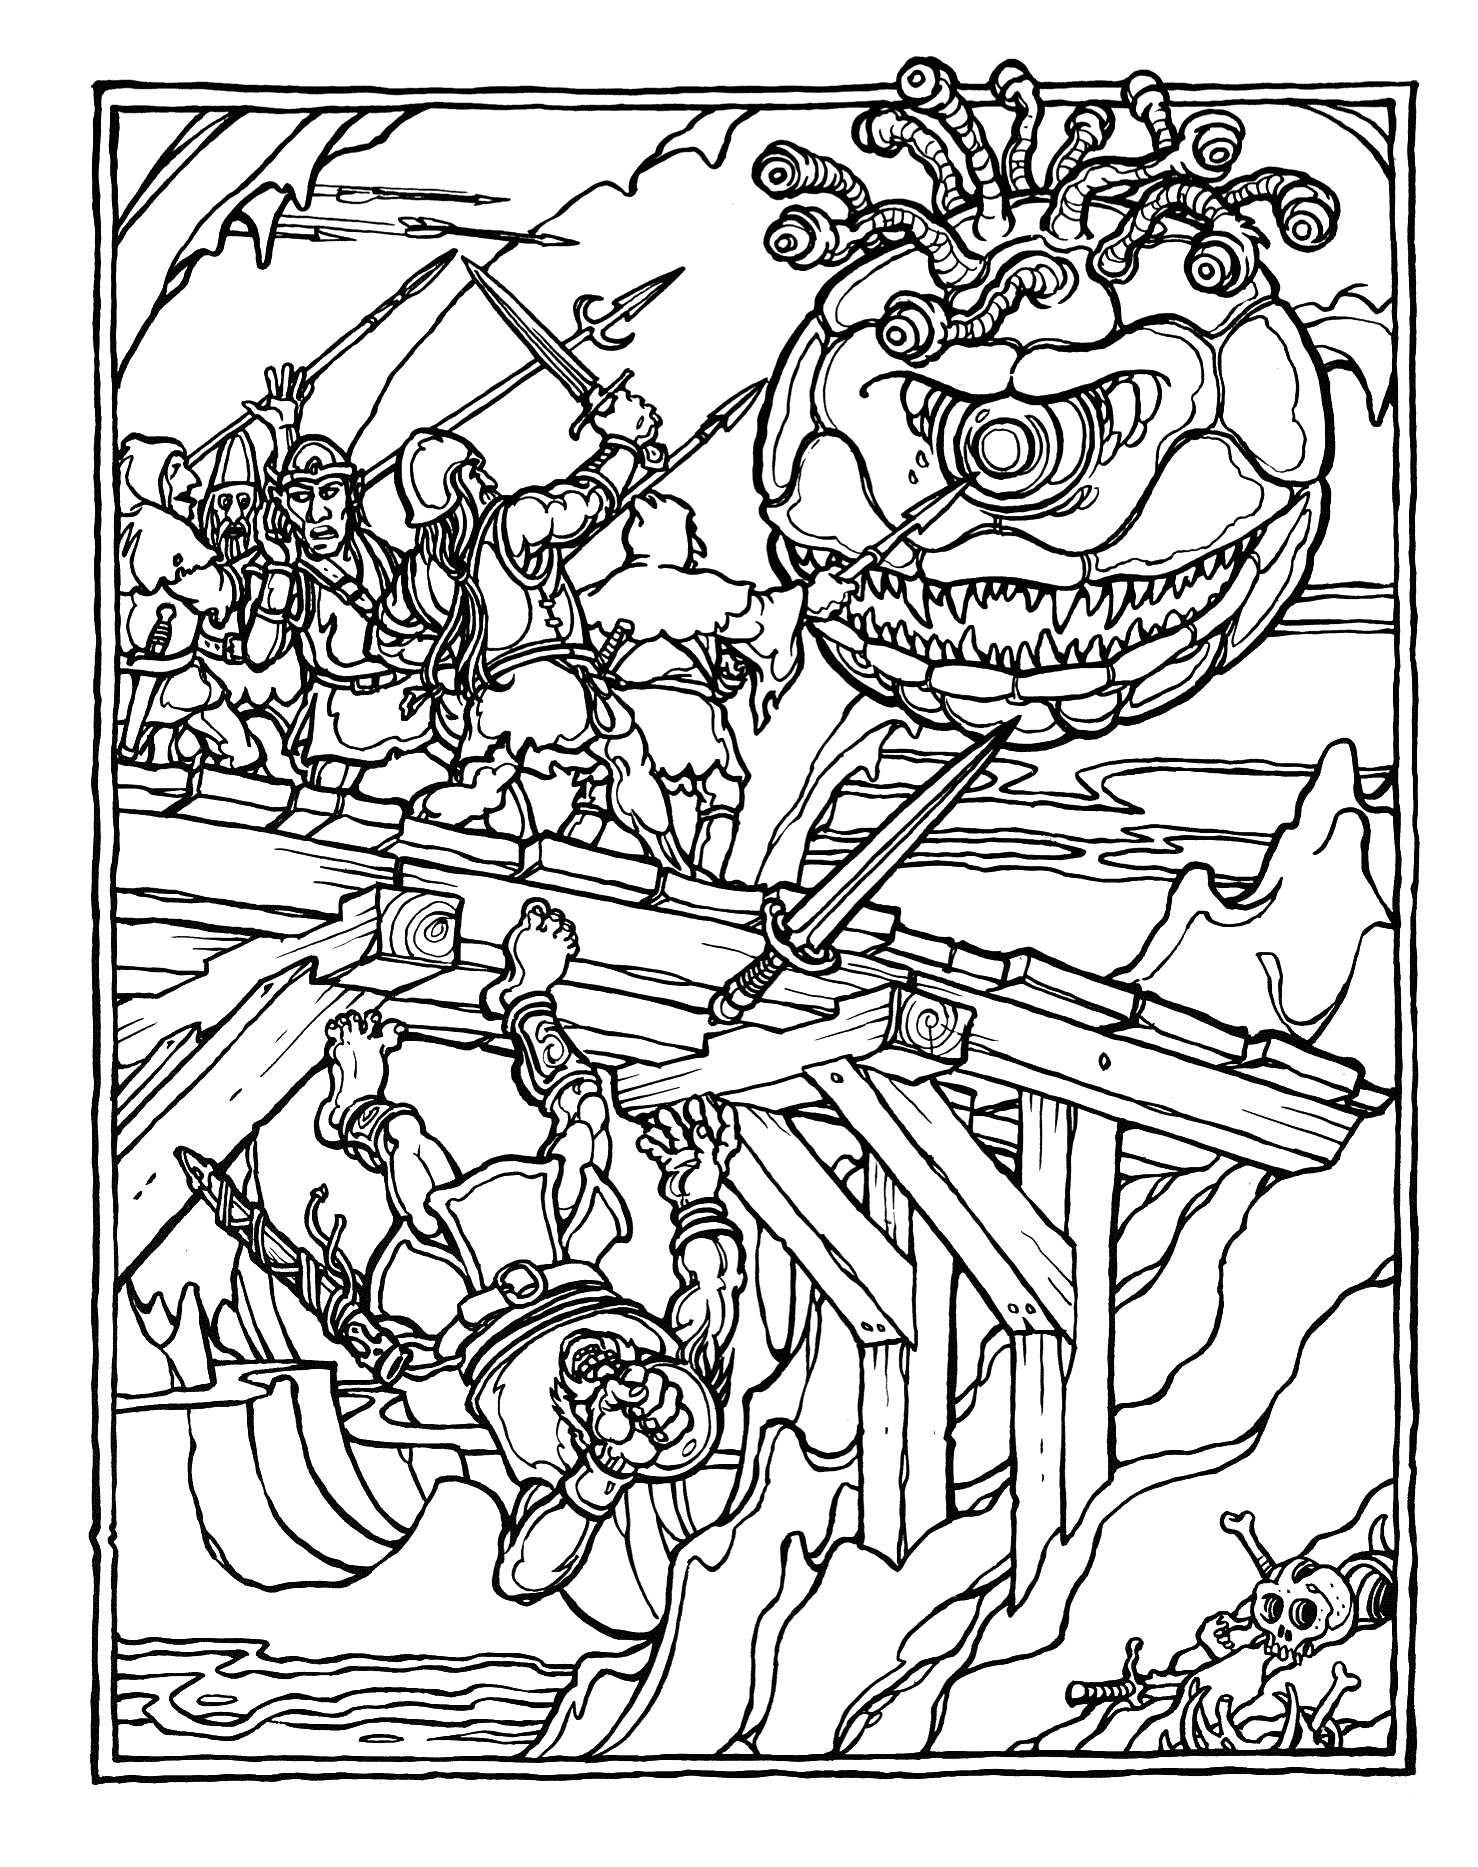 greg irons the official advanced dungeons and dragons coloring album the bridge in the - Dragon Coloring Books